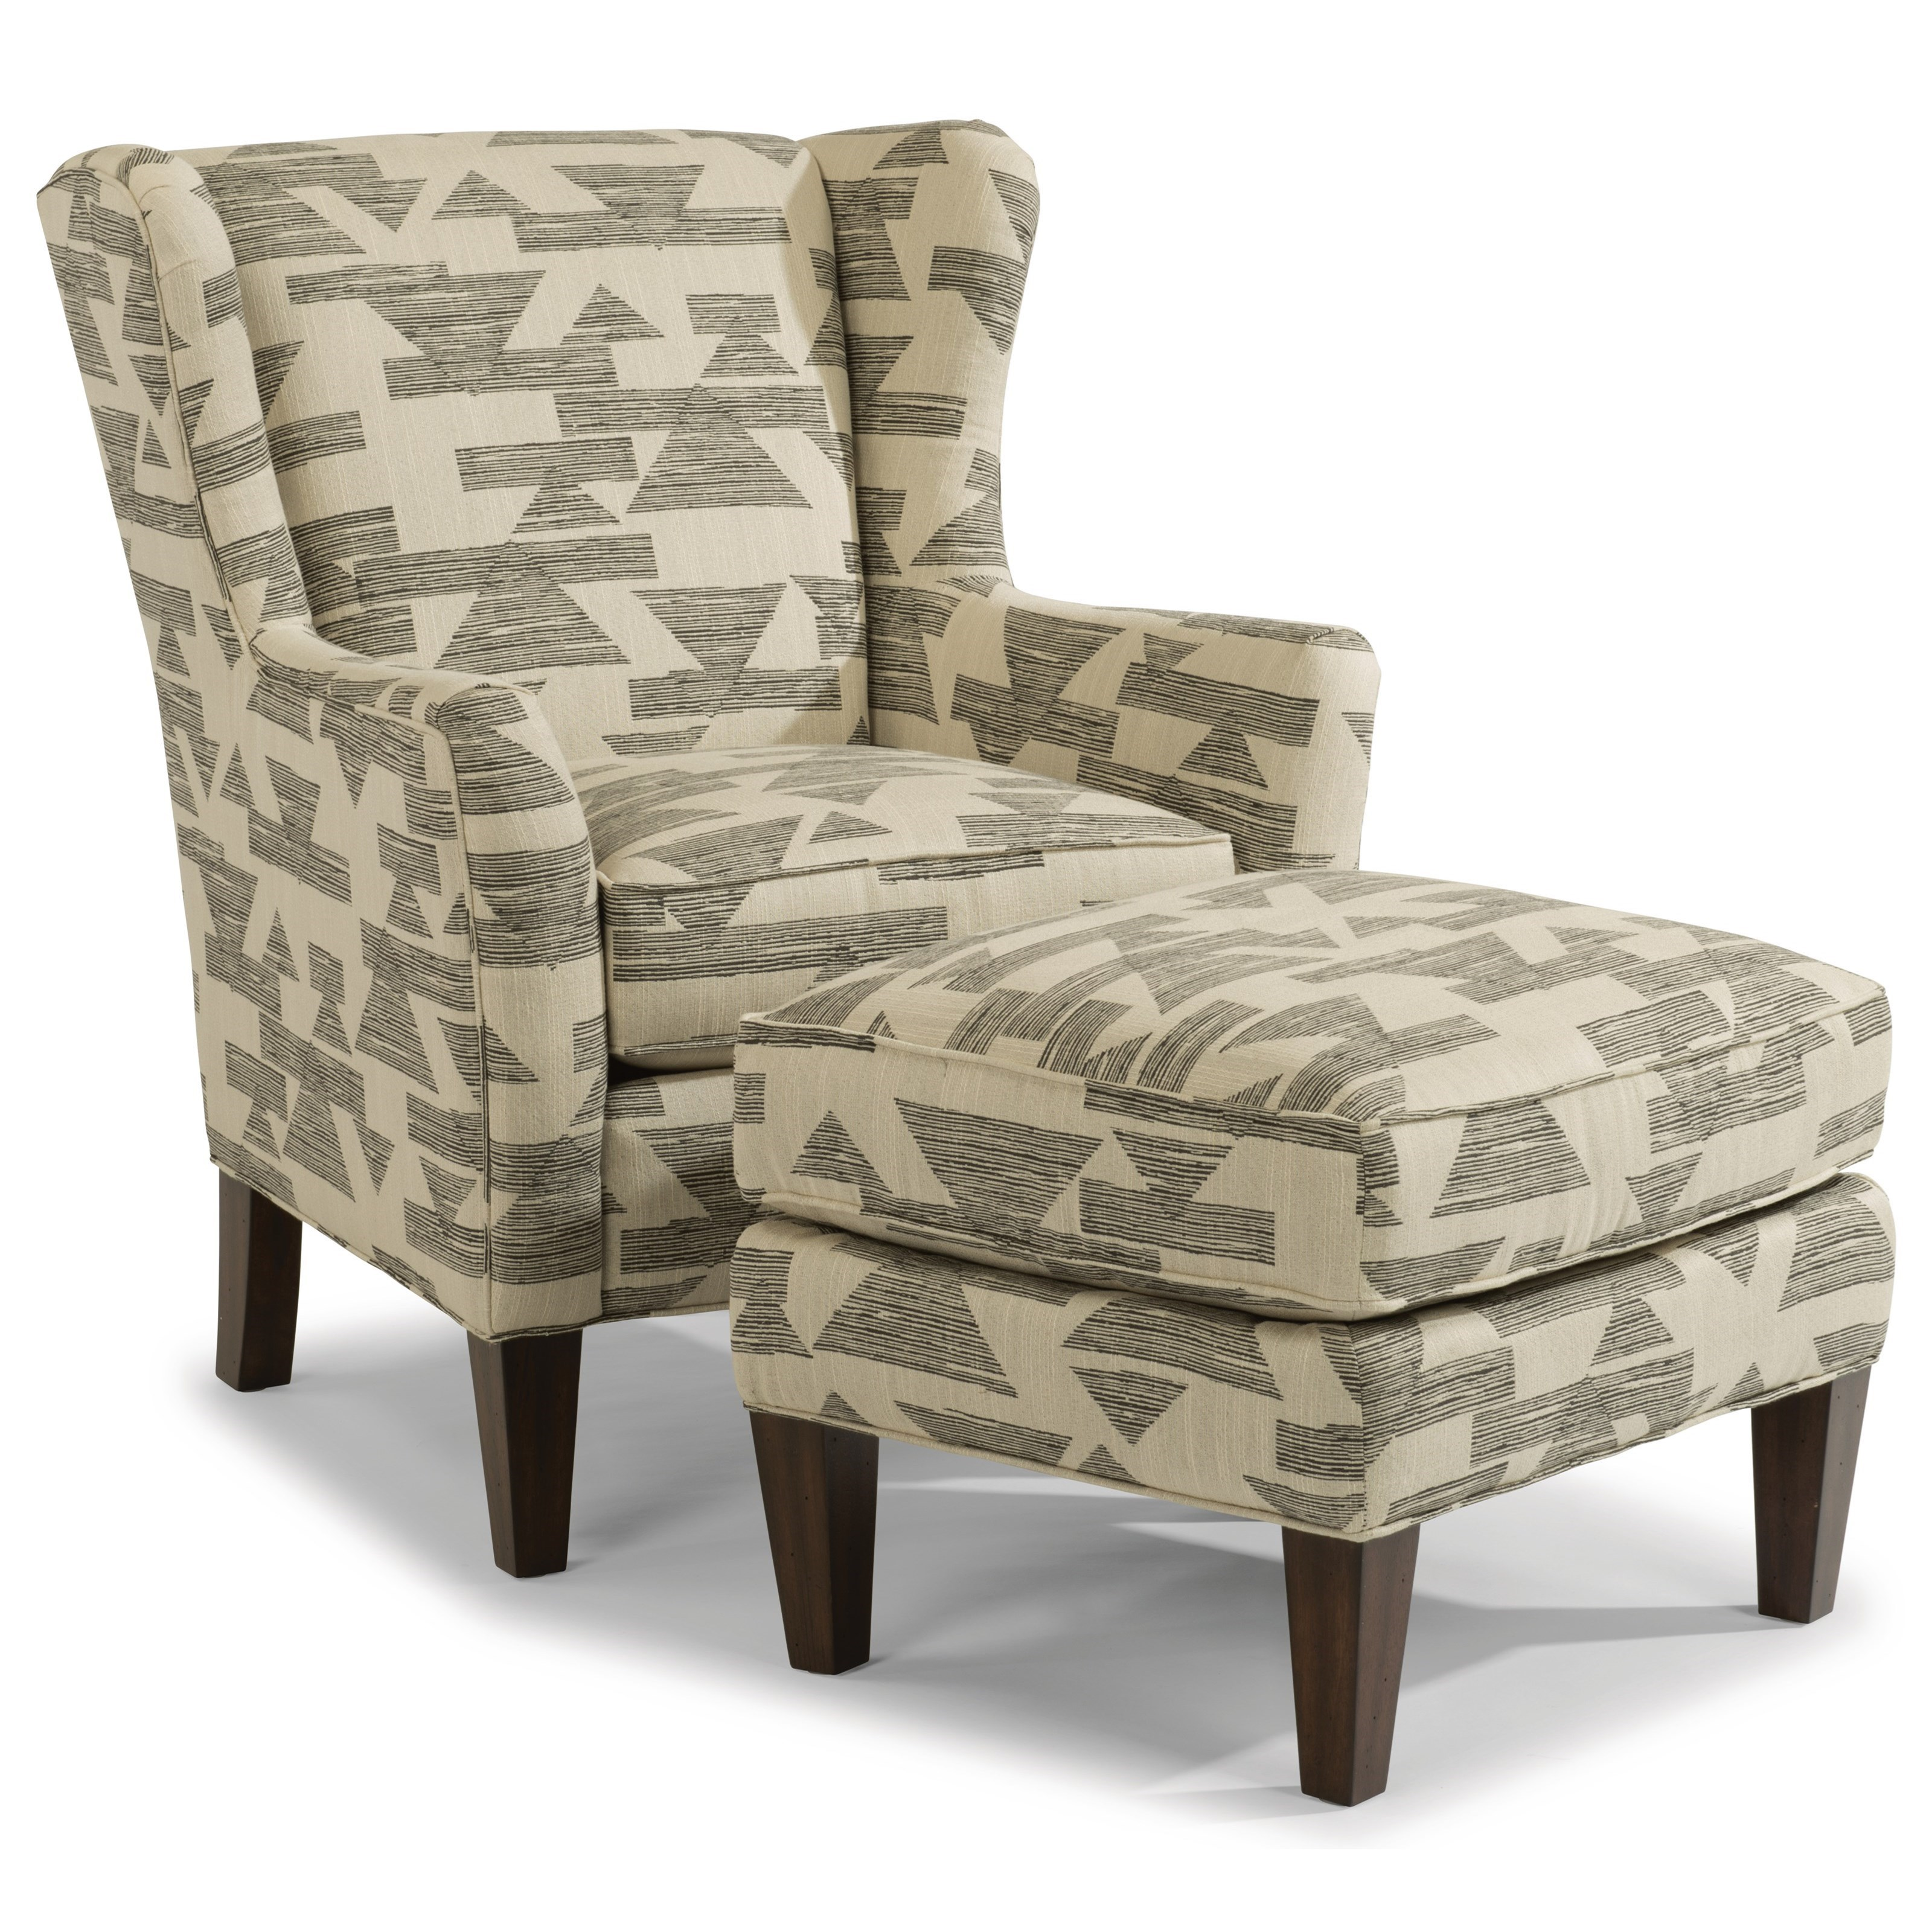 Ace Chair and Ottoman Set by Flexsteel at Steger's Furniture